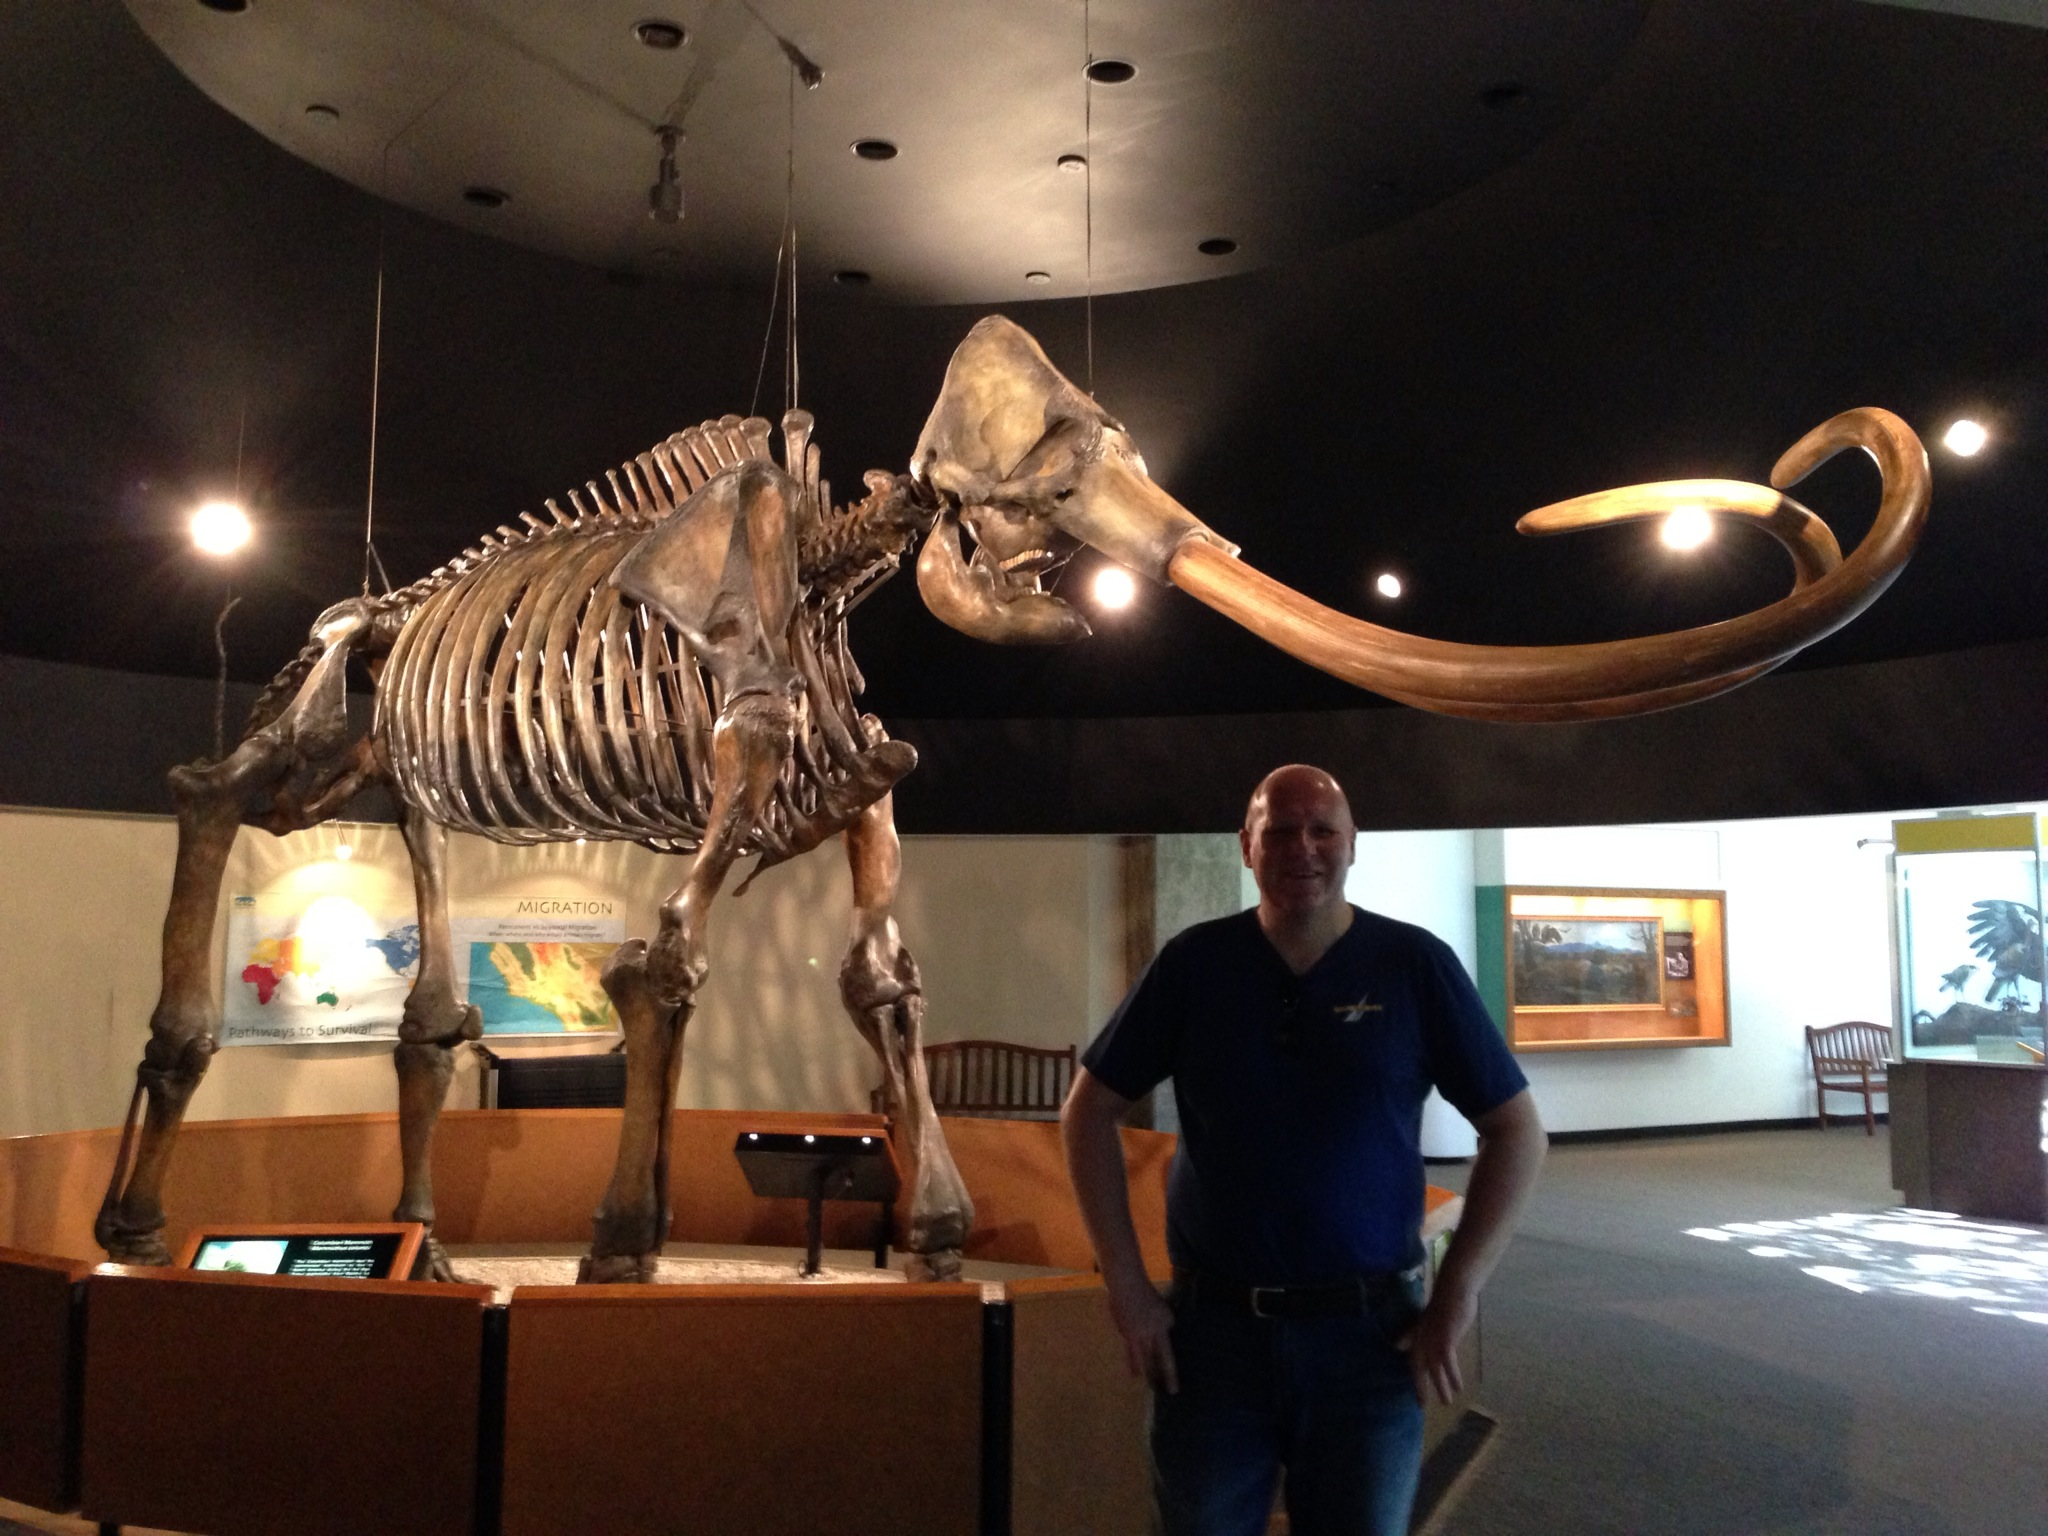 Dan with the absolutely enormous mammoth. It's well..mammoth!